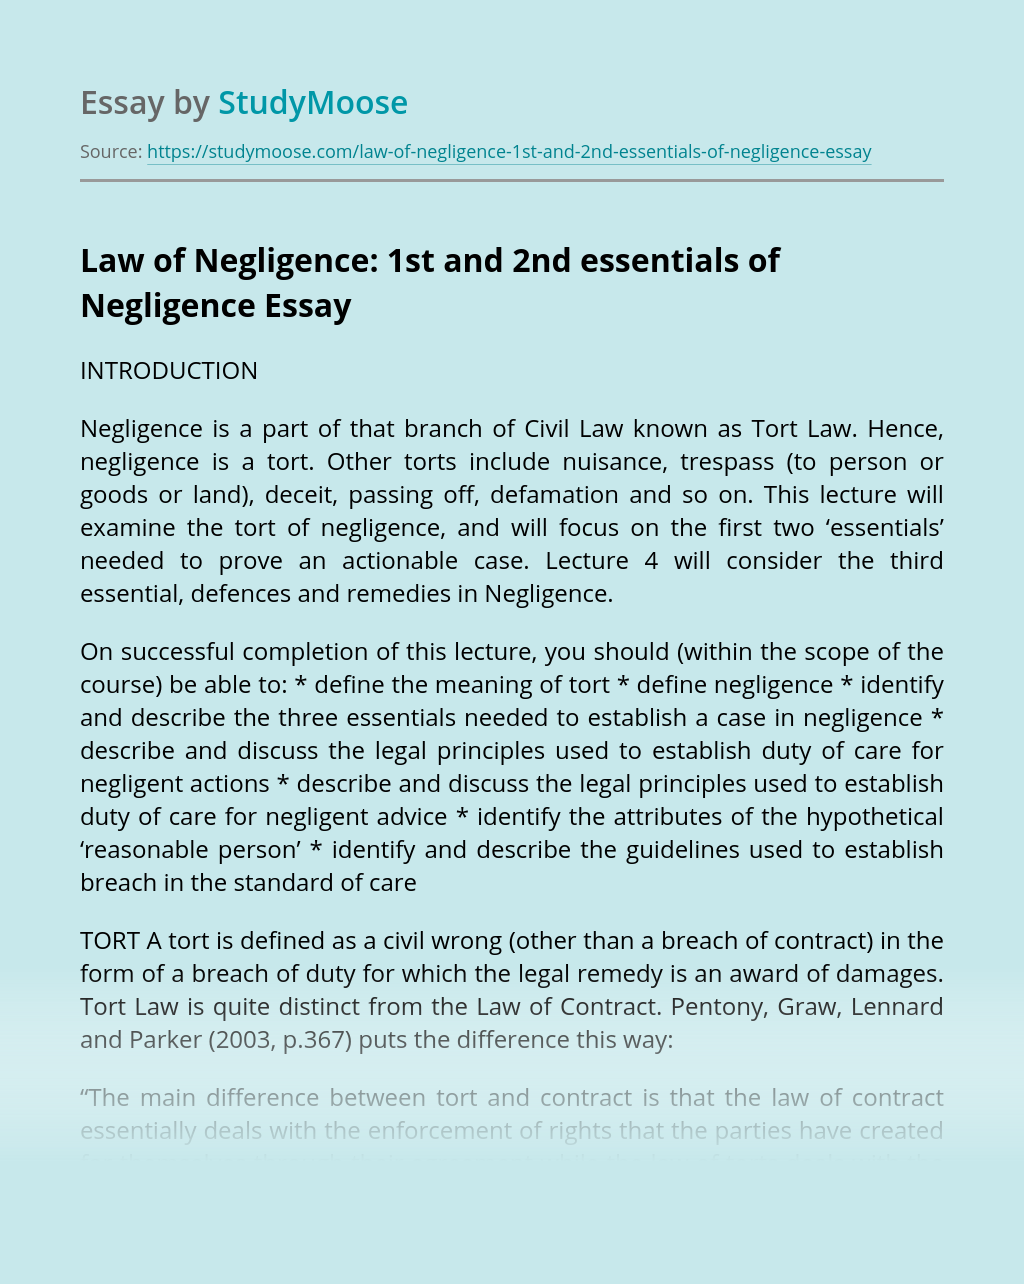 Law of Negligence: 1st and 2nd essentials of Negligence